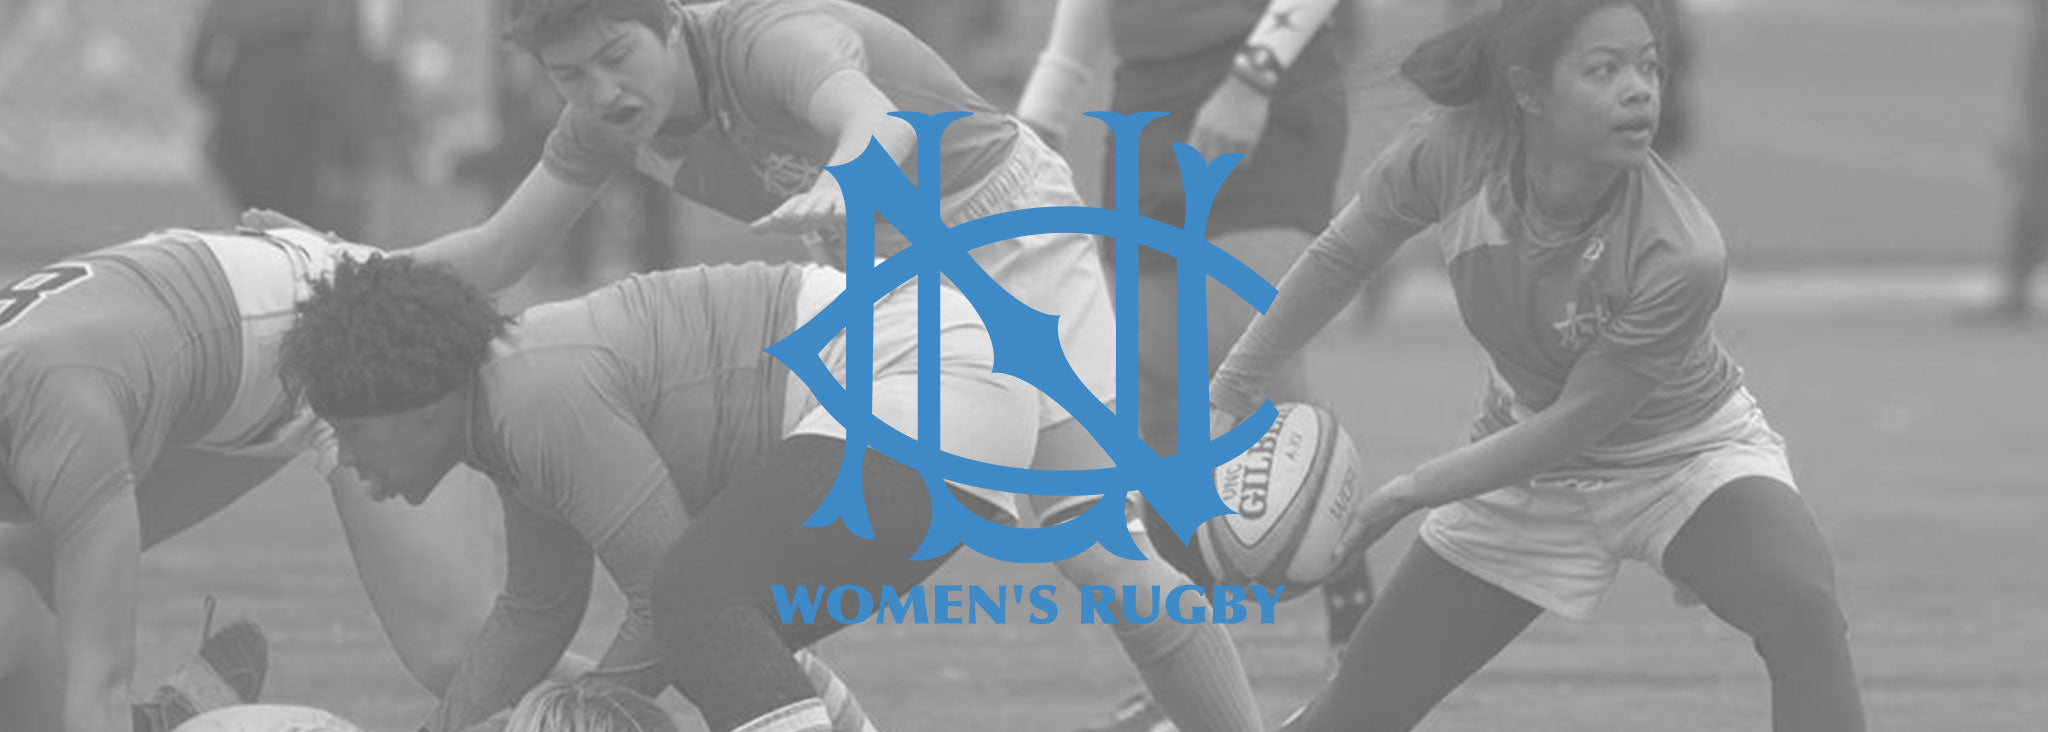 University of North Carolina Chapel Hill Womens Rugby